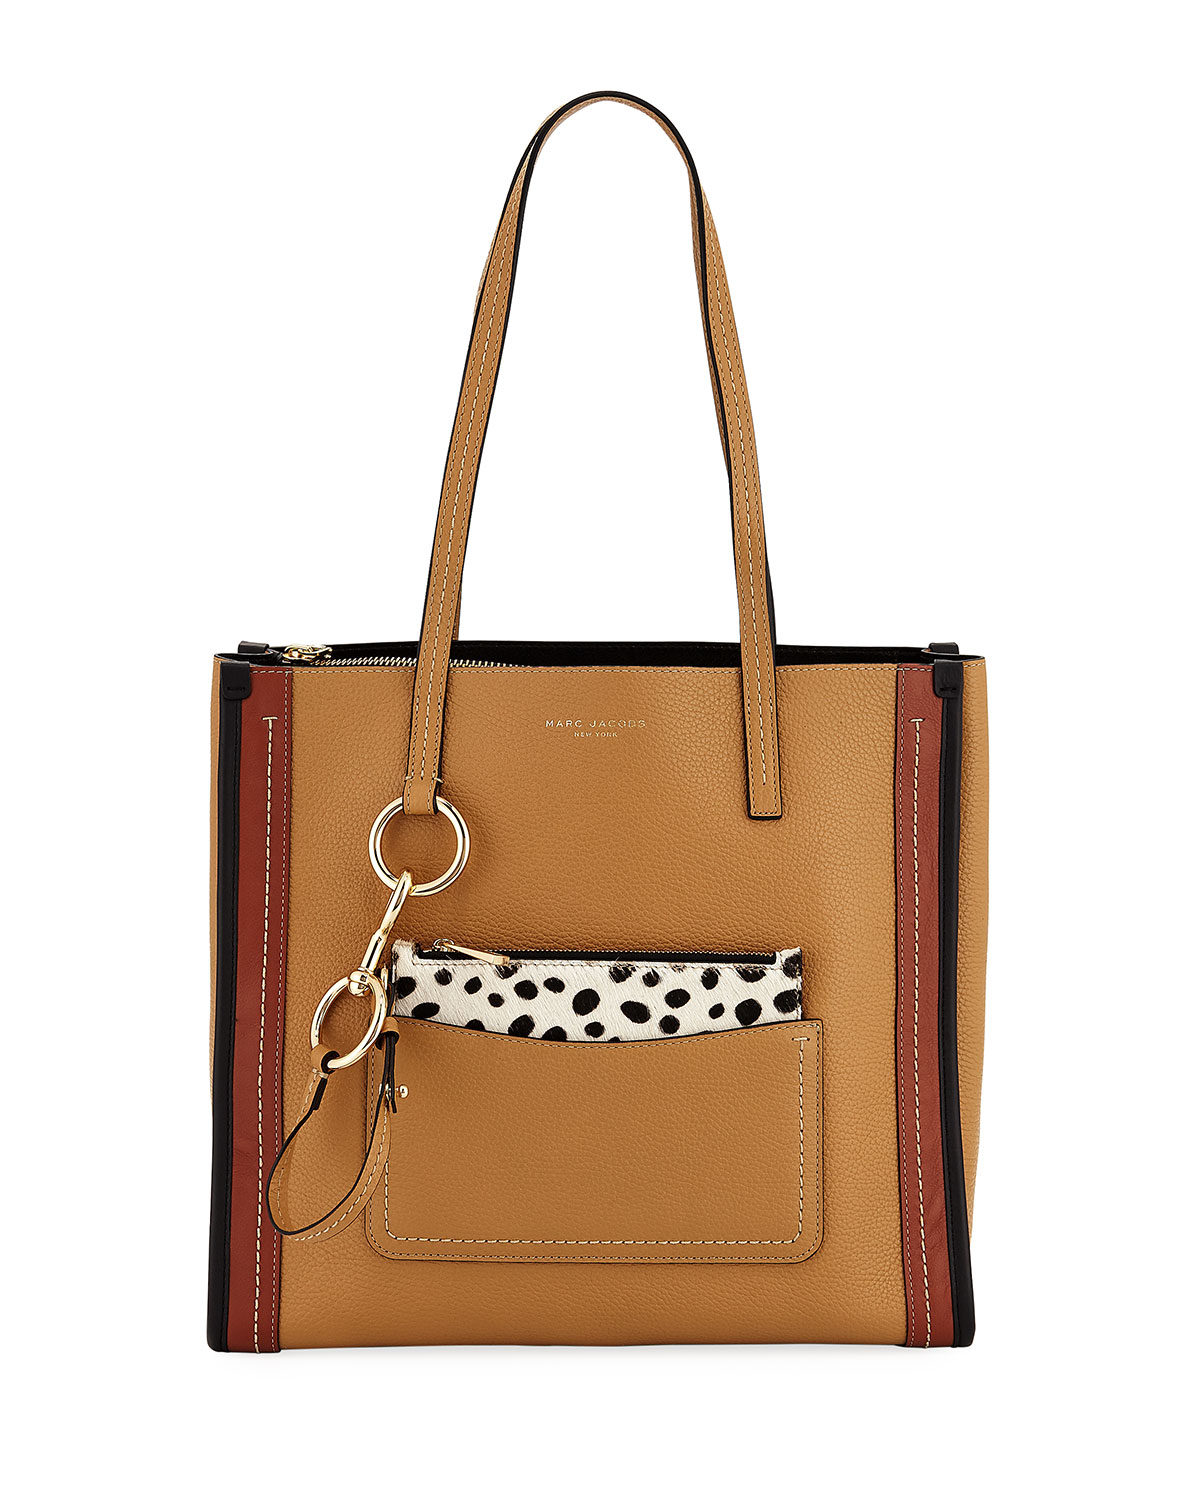 adc1111b1675 Marc Jacobs The Dalmatian Grind East-West Shopper Tote Bag